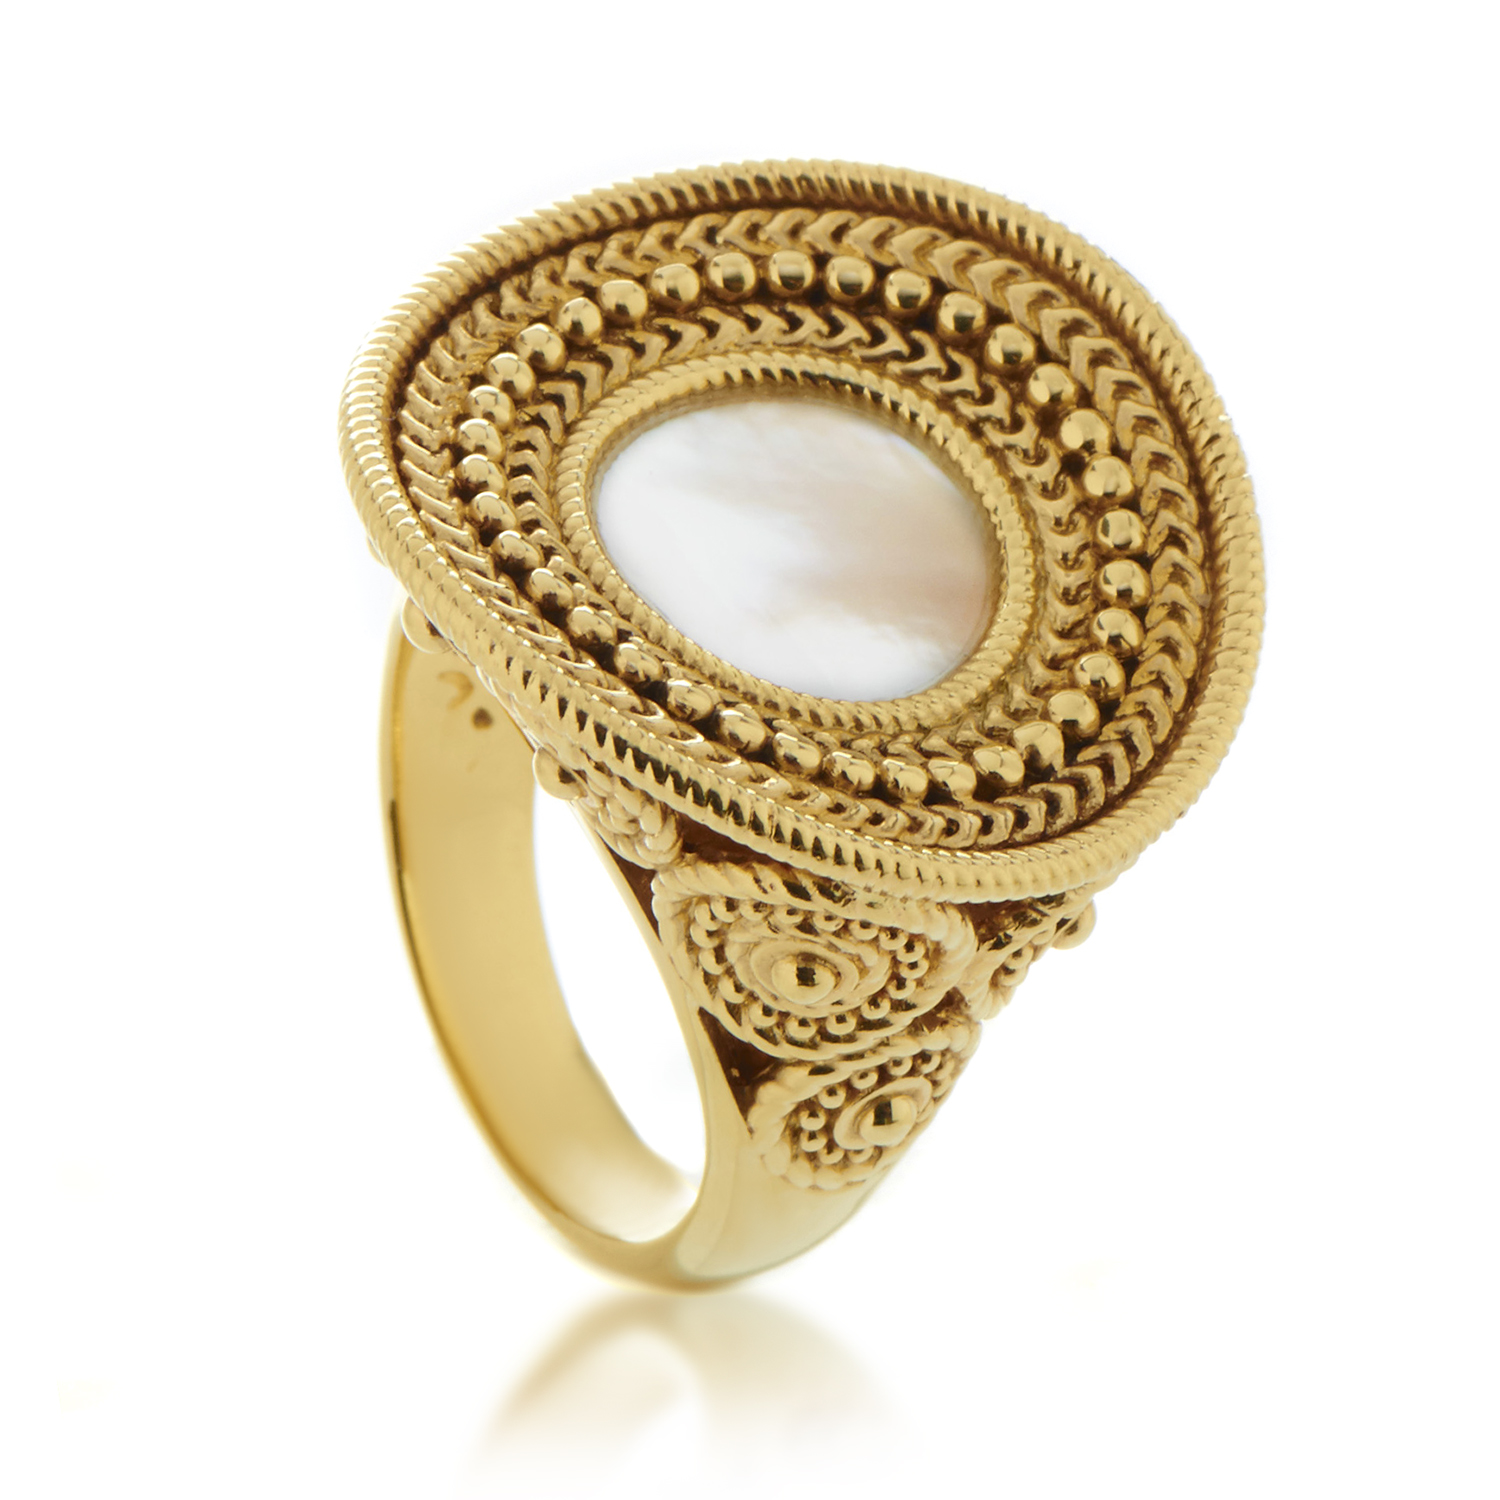 Ruedo Women's 18K Yellow Gold Mother of Pearl Cocktail Ring